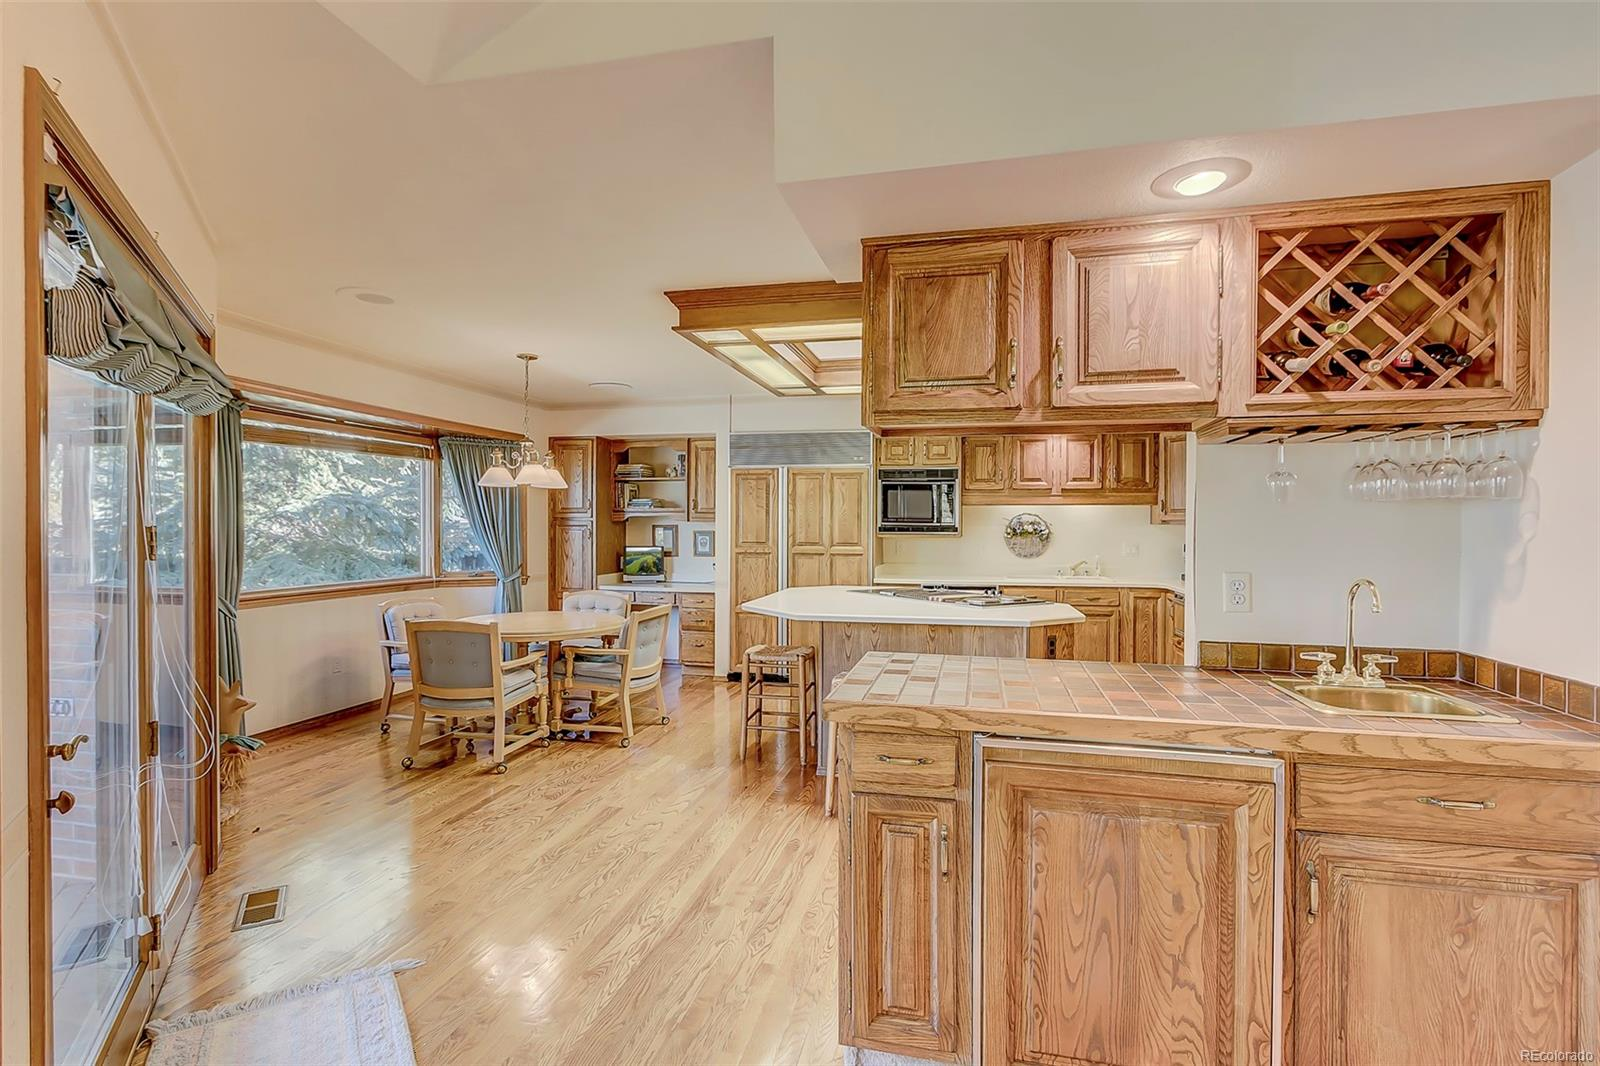 Wet bar, deck access & kitchen are adjacent to family room